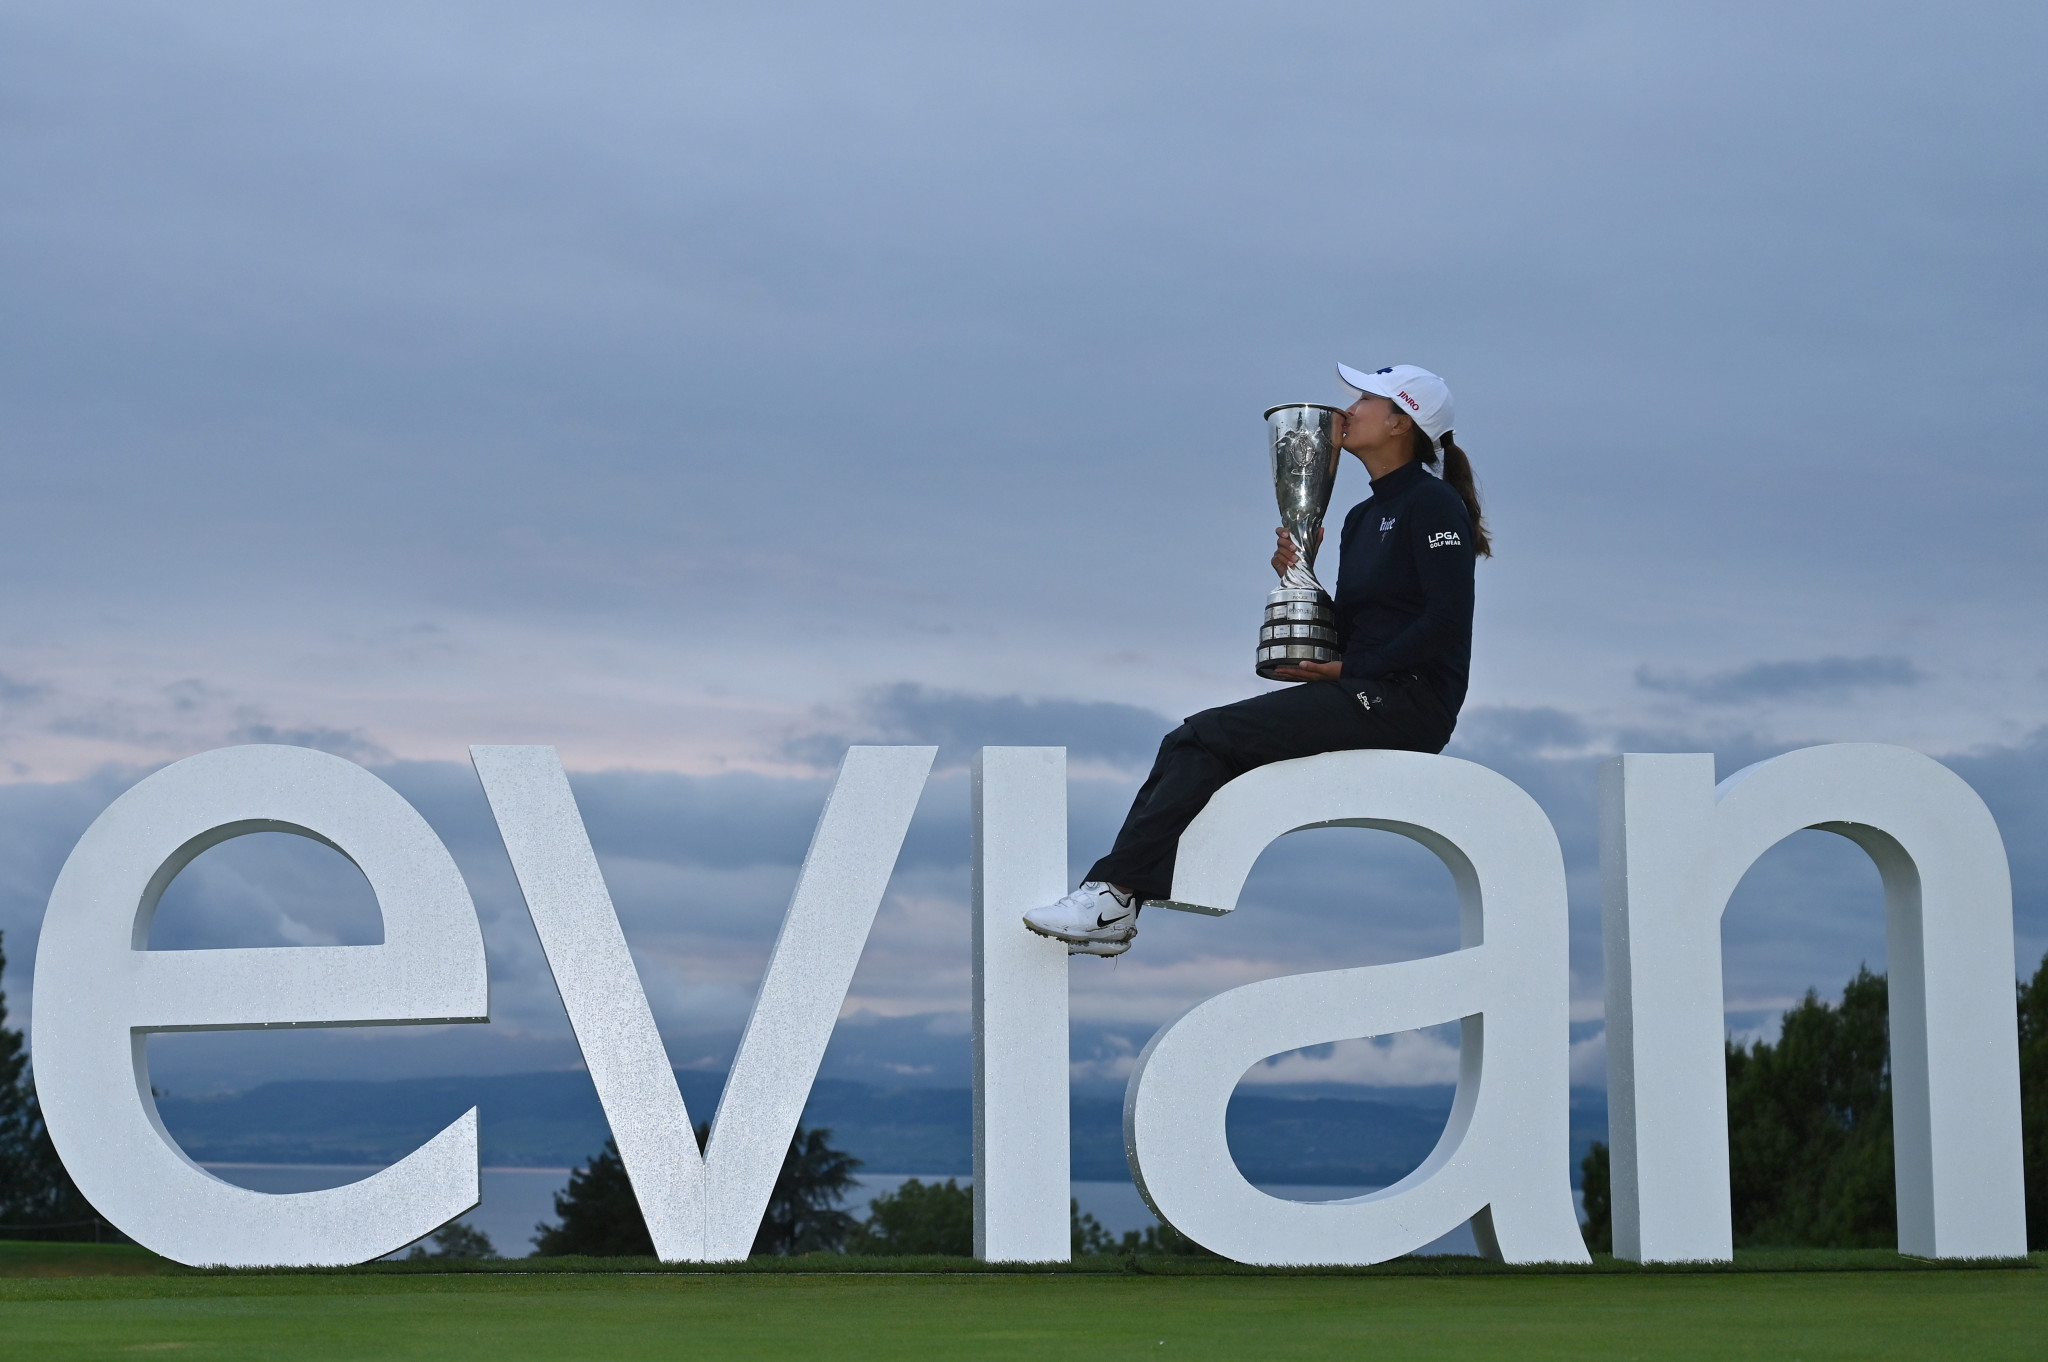 The Evian Championship - won by Ko Jin-young - has been moved to take advantage of a window previous allocated to Tokyo 2020